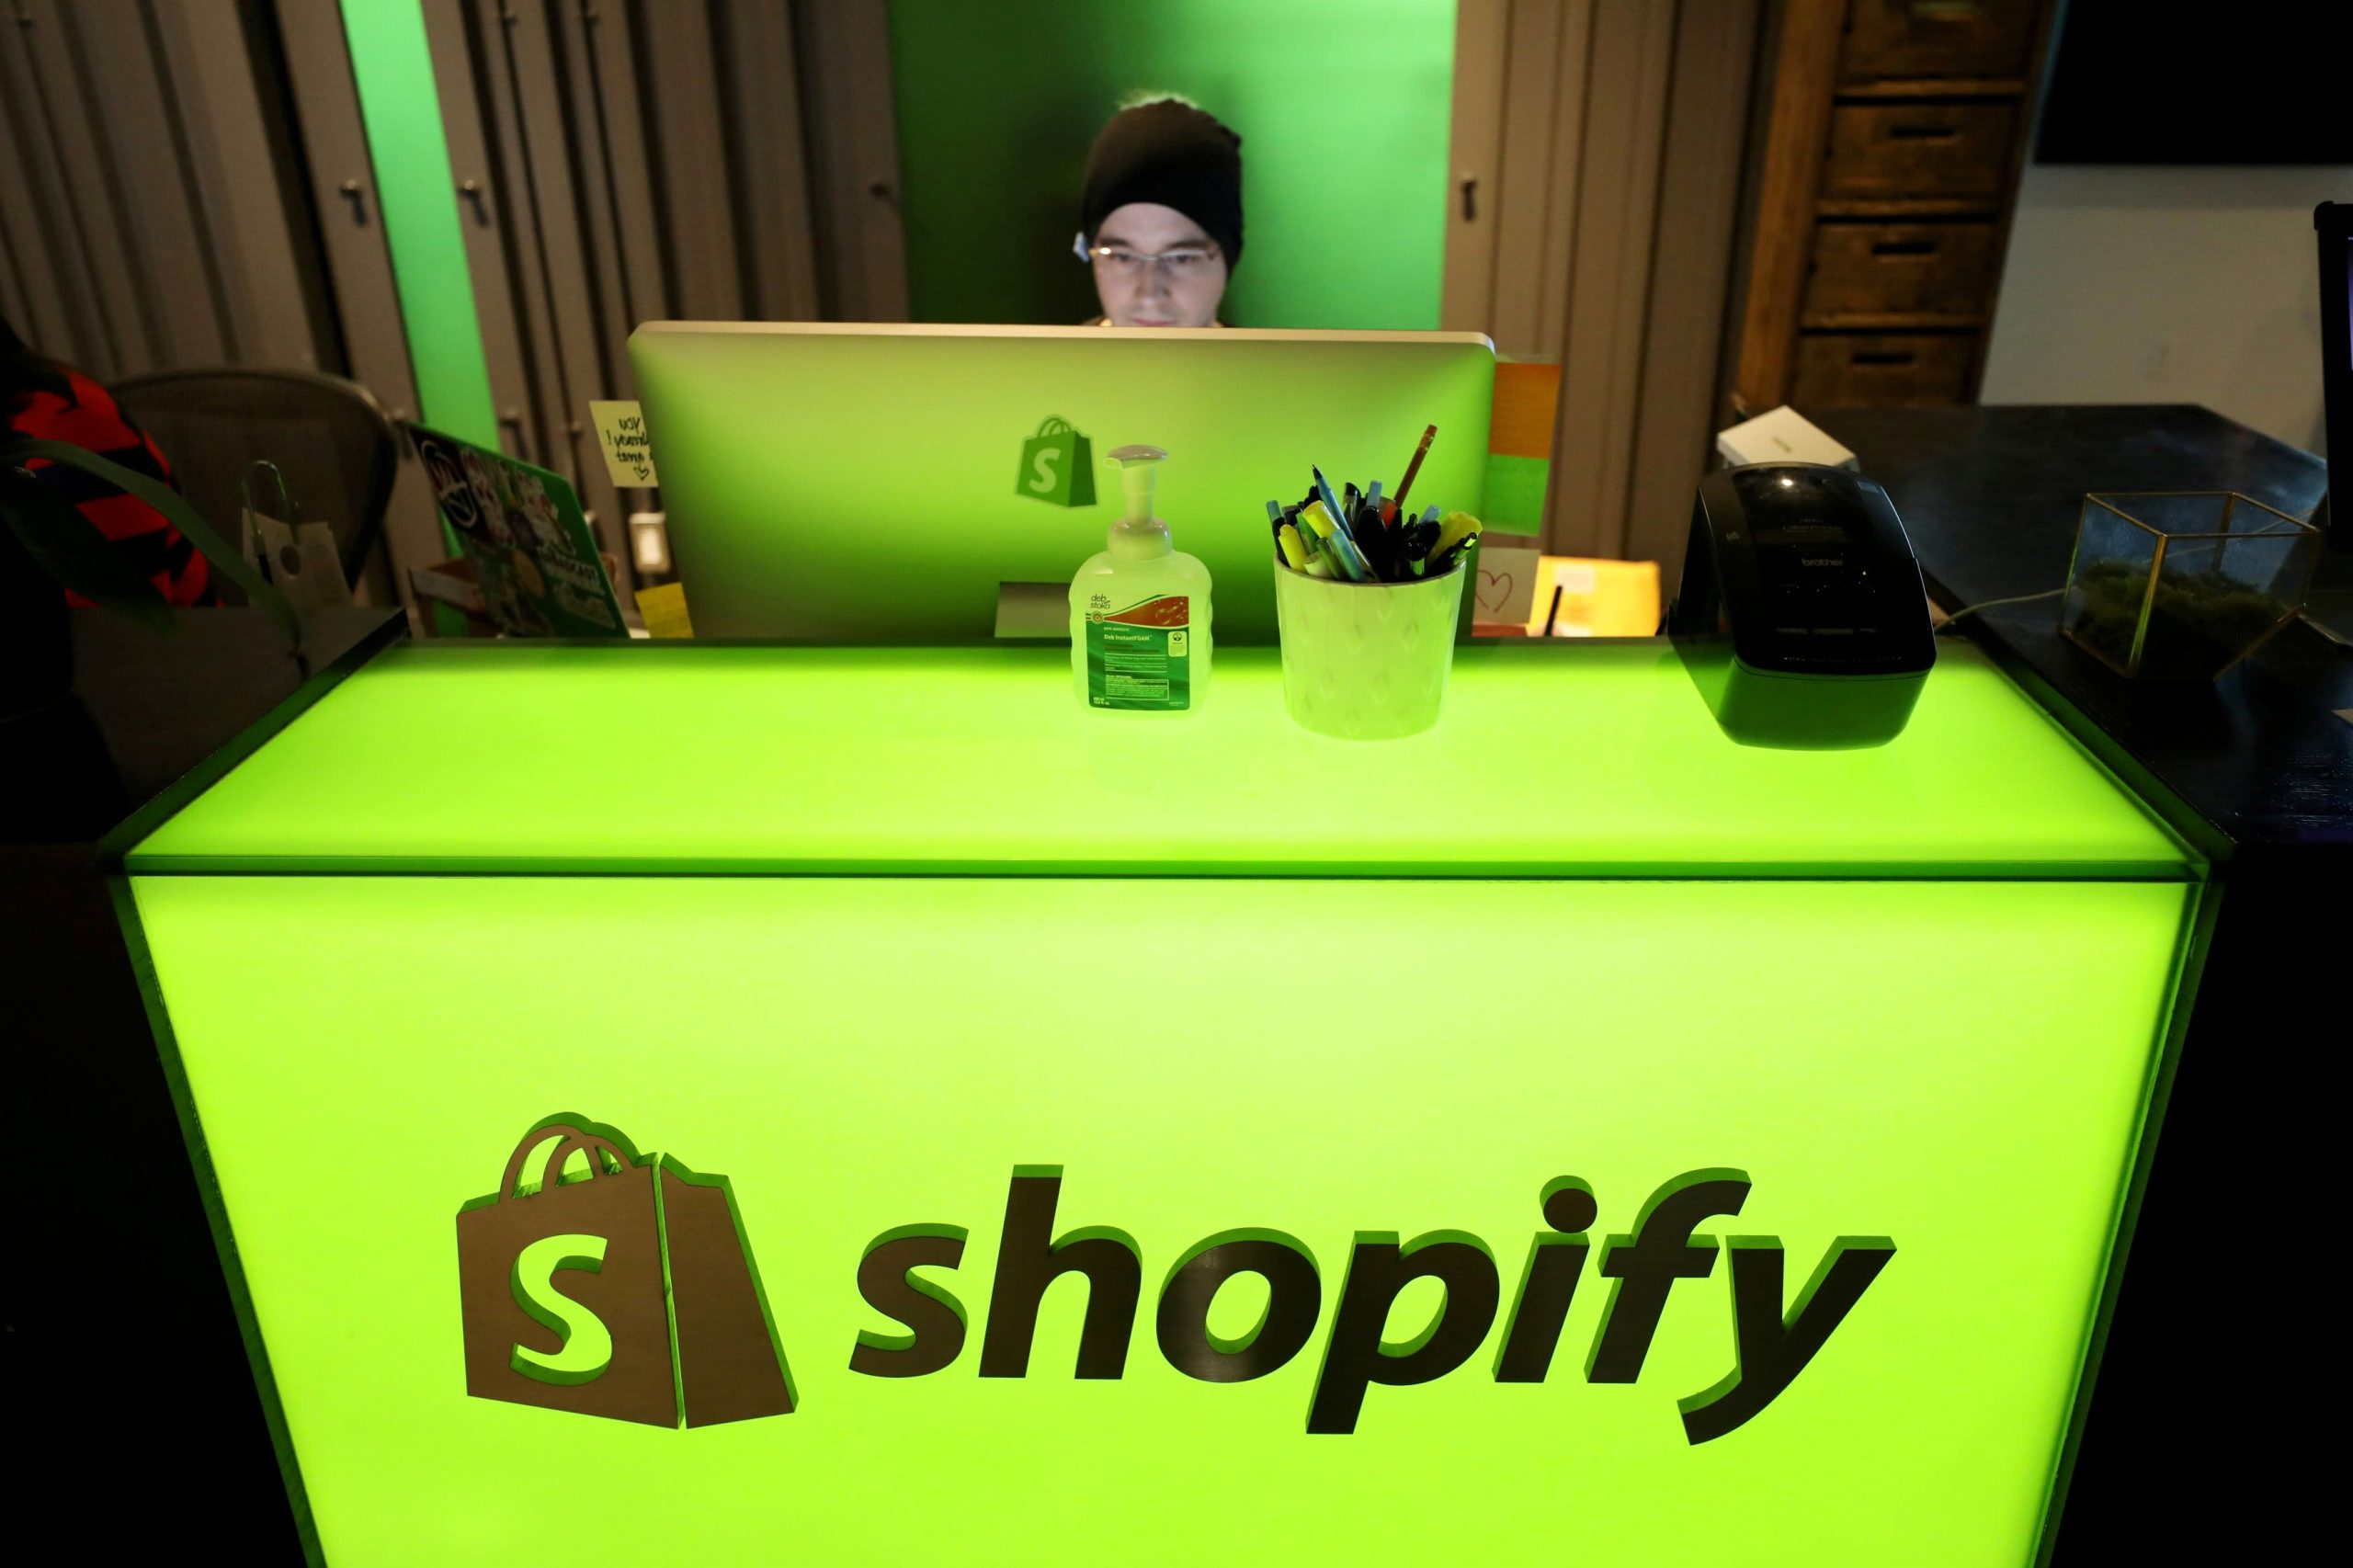 Shopify surges after e-commerce boom fuels big earnings beat